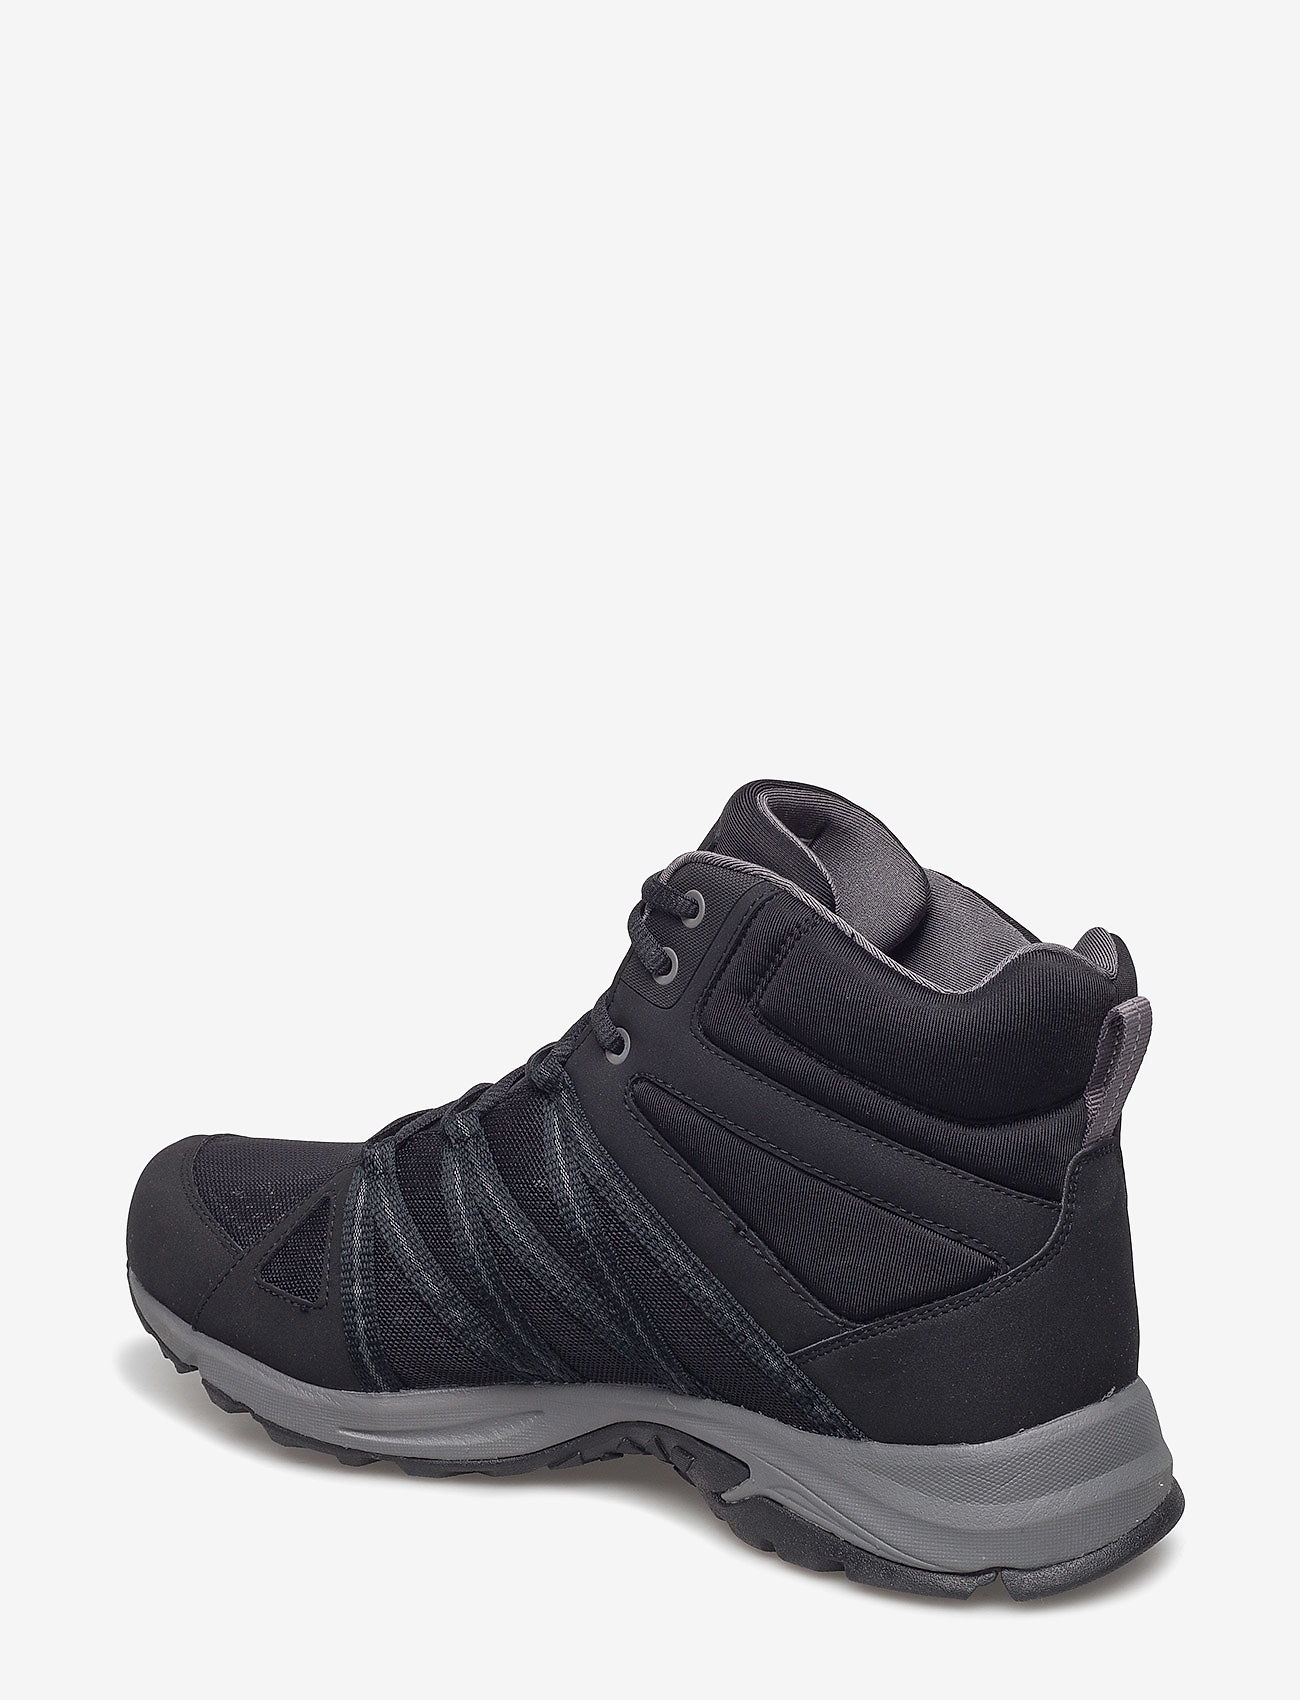 Impulse Mid Ii Gtx M (Black) - Viking